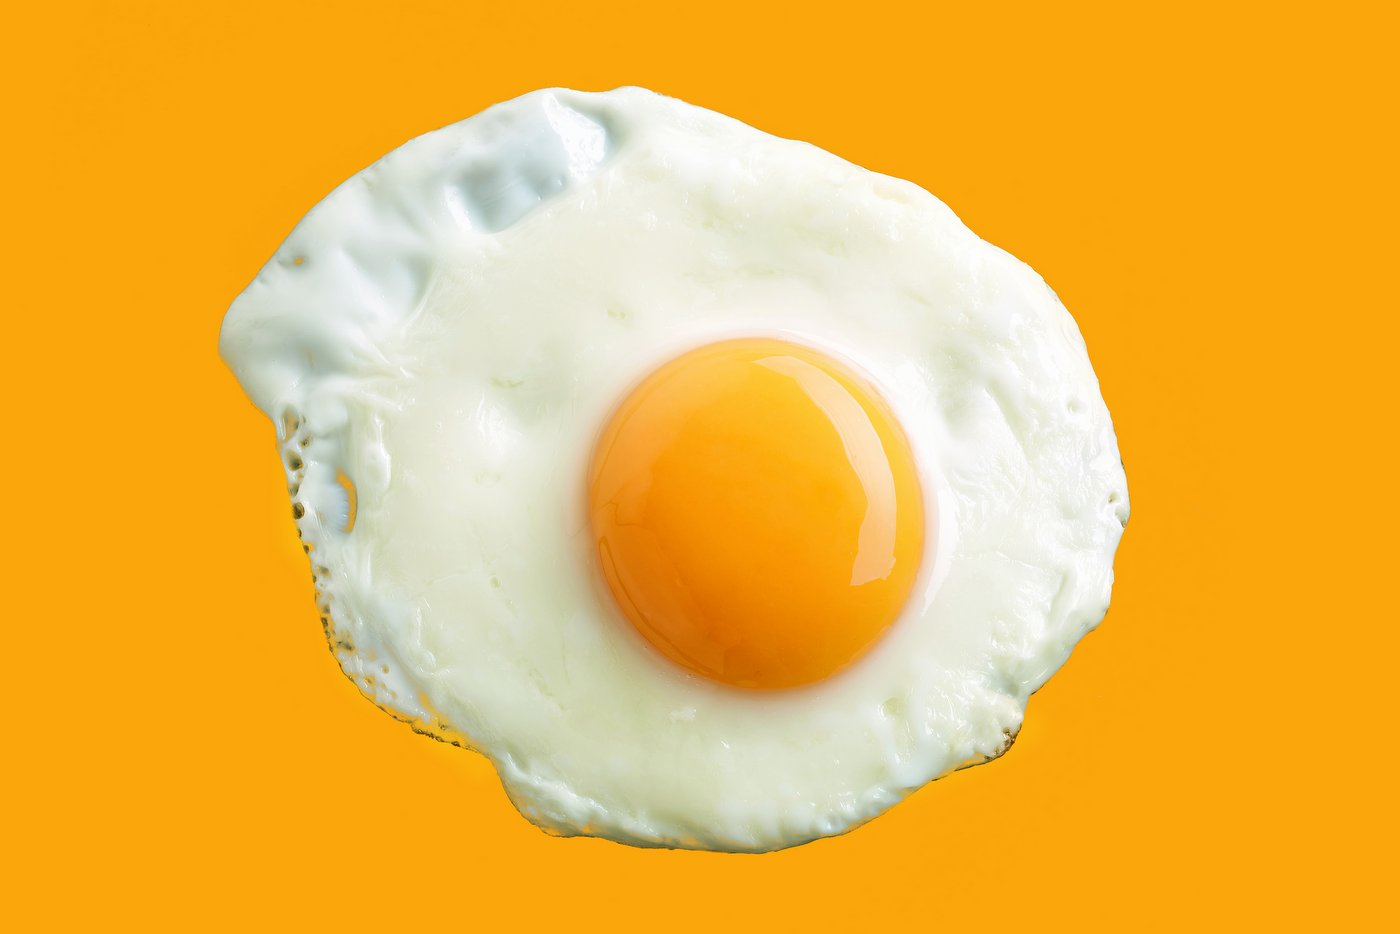 Fried egg on yellow background